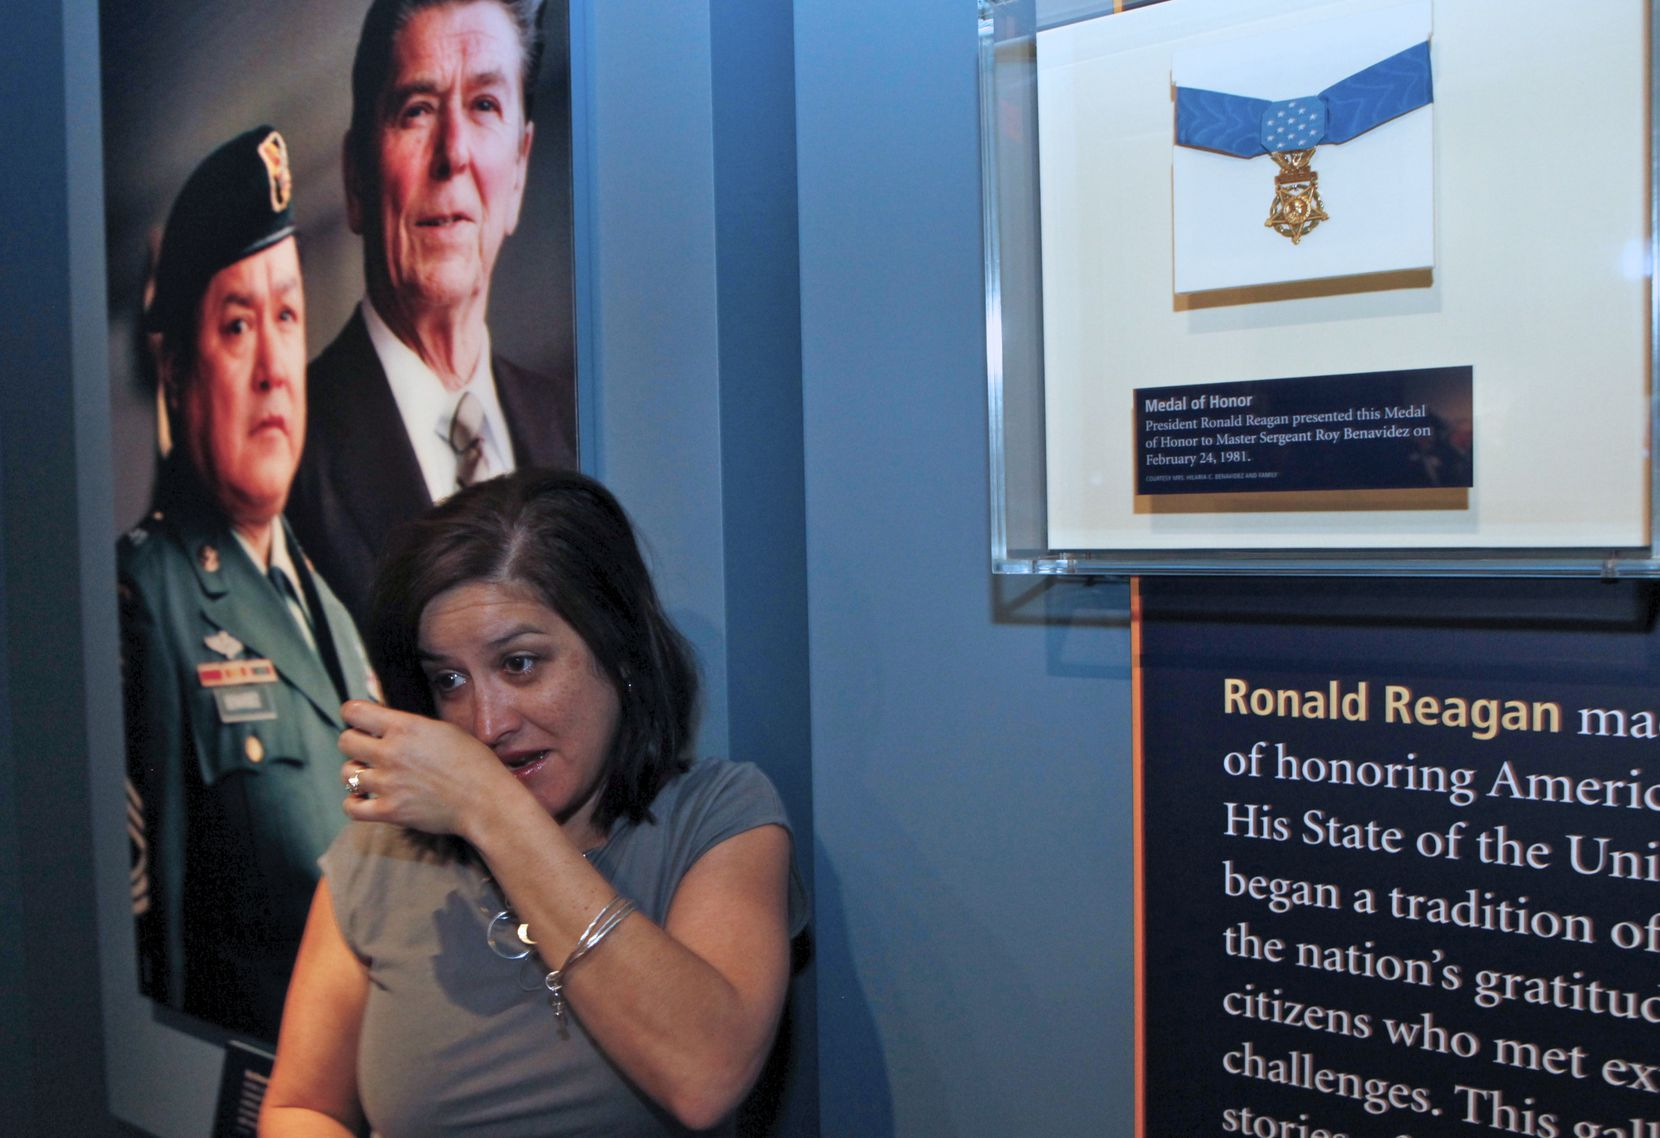 Yvette Benavidez cried as her family unveiled the Medal of Honor earned by her father, Sgt. Roy Benavidez,, at the Ronald Reagan Library in Simi Valley, Calif., in 2011. President Ronald Reagan presented the Medal of Honor to Benavidez  in 1981. (Damian Dovarqanes/The Associated Press)